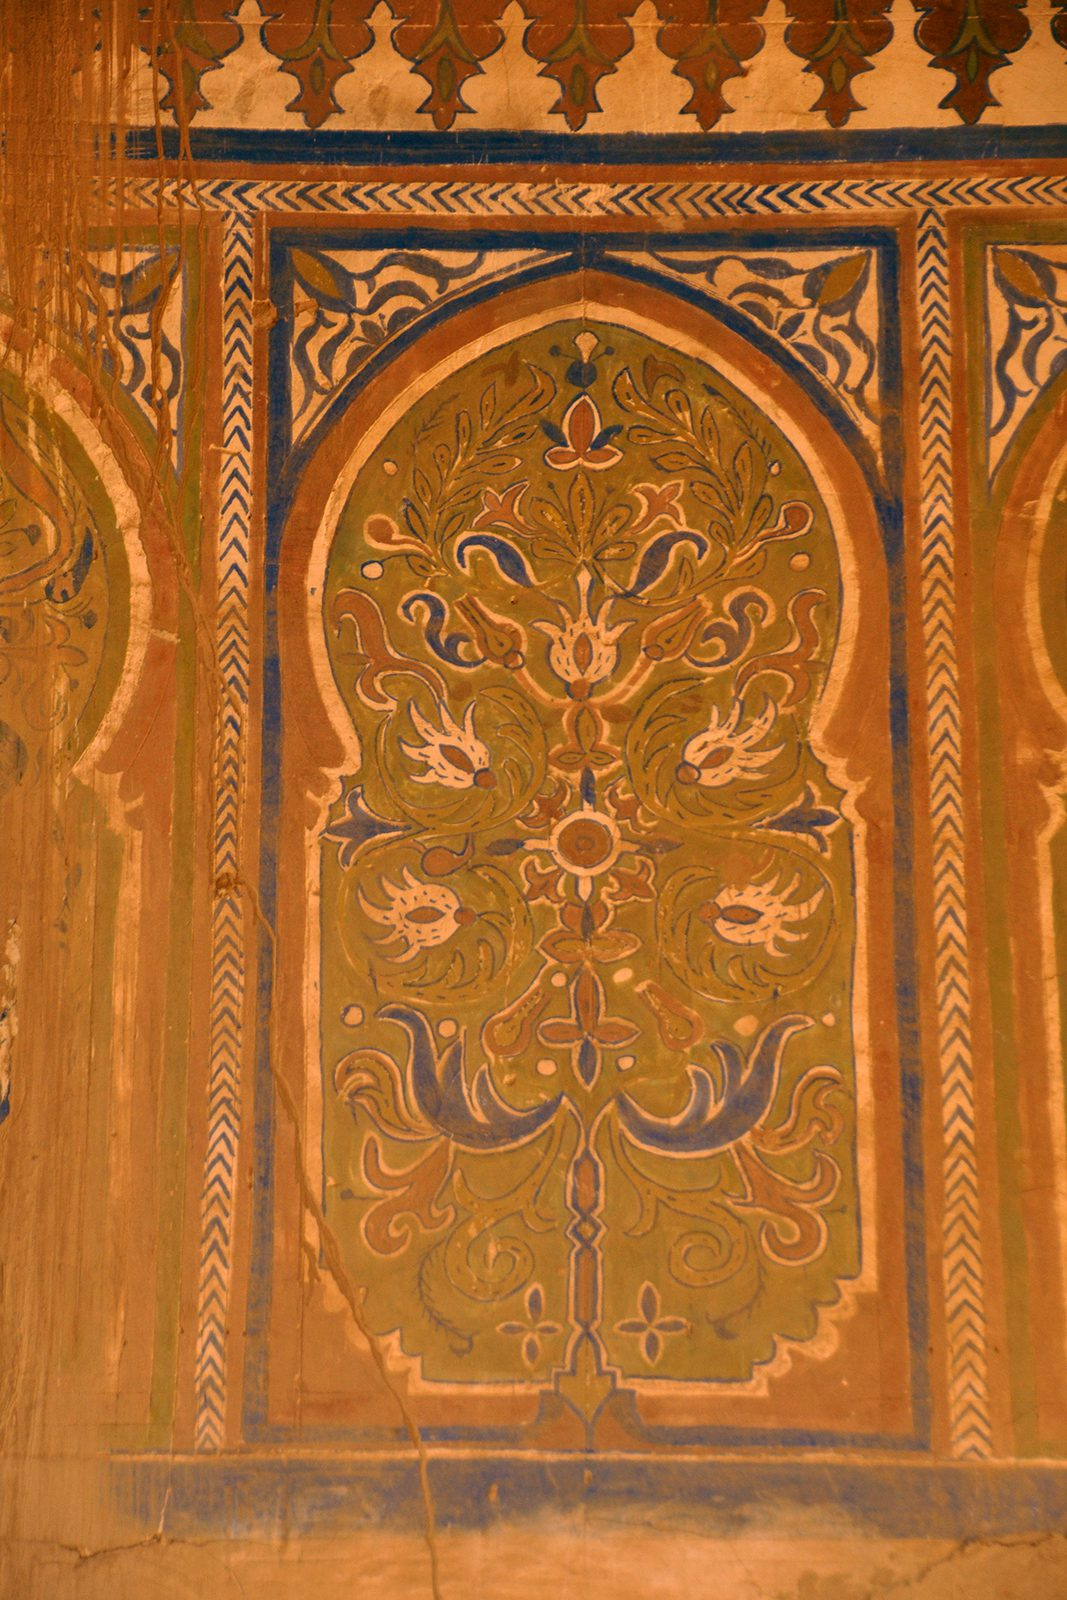 Photo of an intricately painted orange door in Morocco.